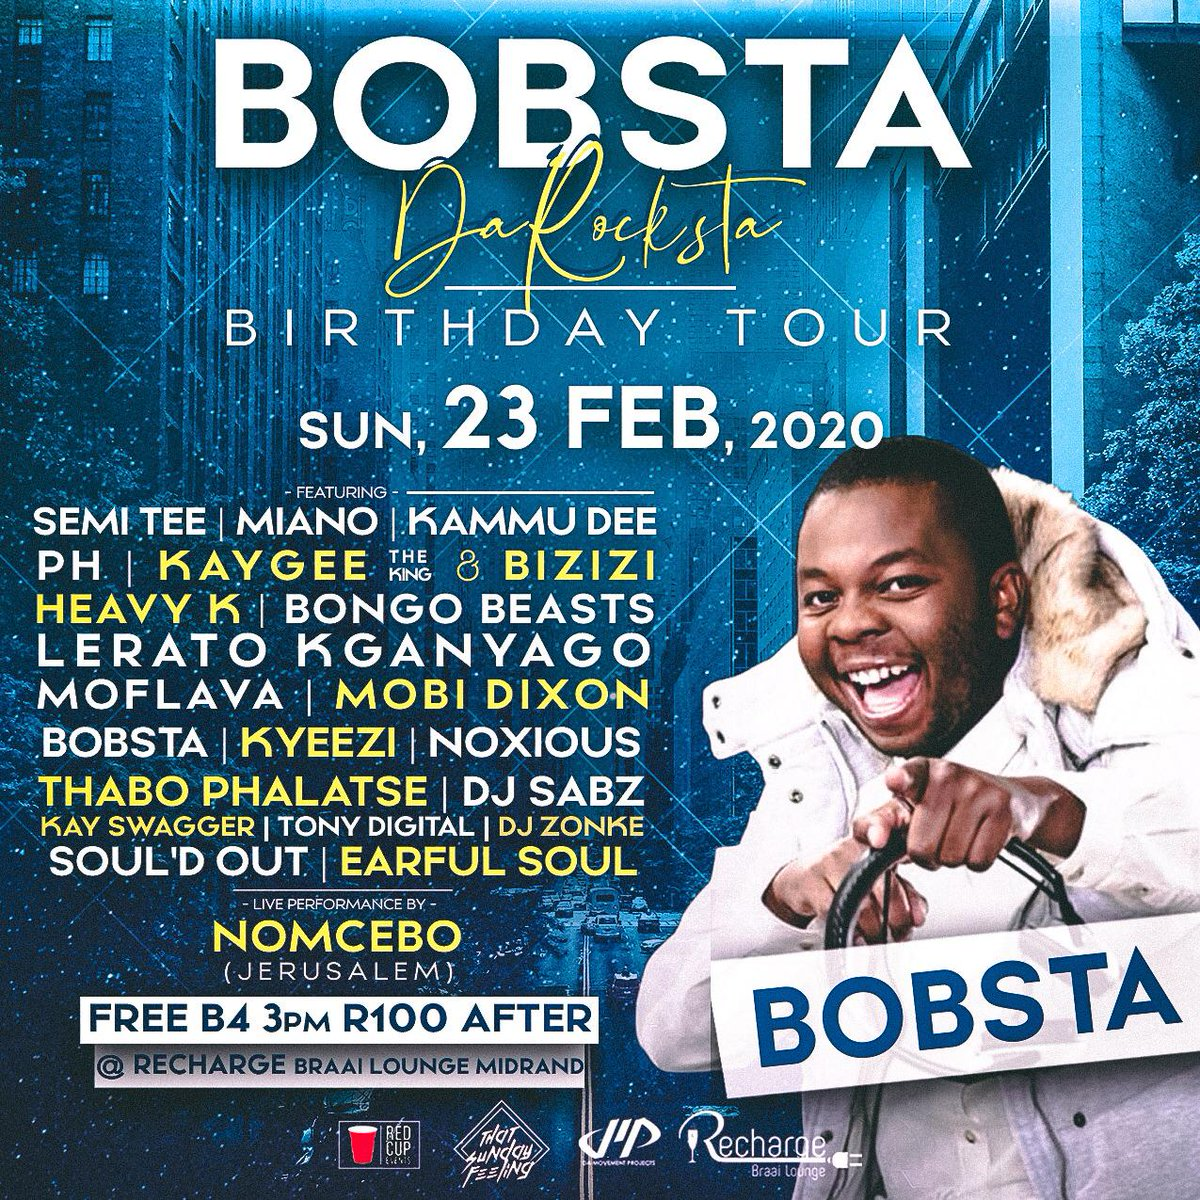 Outfit packed and ready for the #BobstaBirthdayTour  coz @Bobstadj is hosting again y'all @METROFMSA fam will be out and about so look out for @Leratokganyago @Shimza01 @iam_PH @Kyeezi @Moflava  @RechargeLounge  FREE BEFORE 4PM R100 THEREAFTER  23 Febpic.twitter.com/iBEgVneK4b